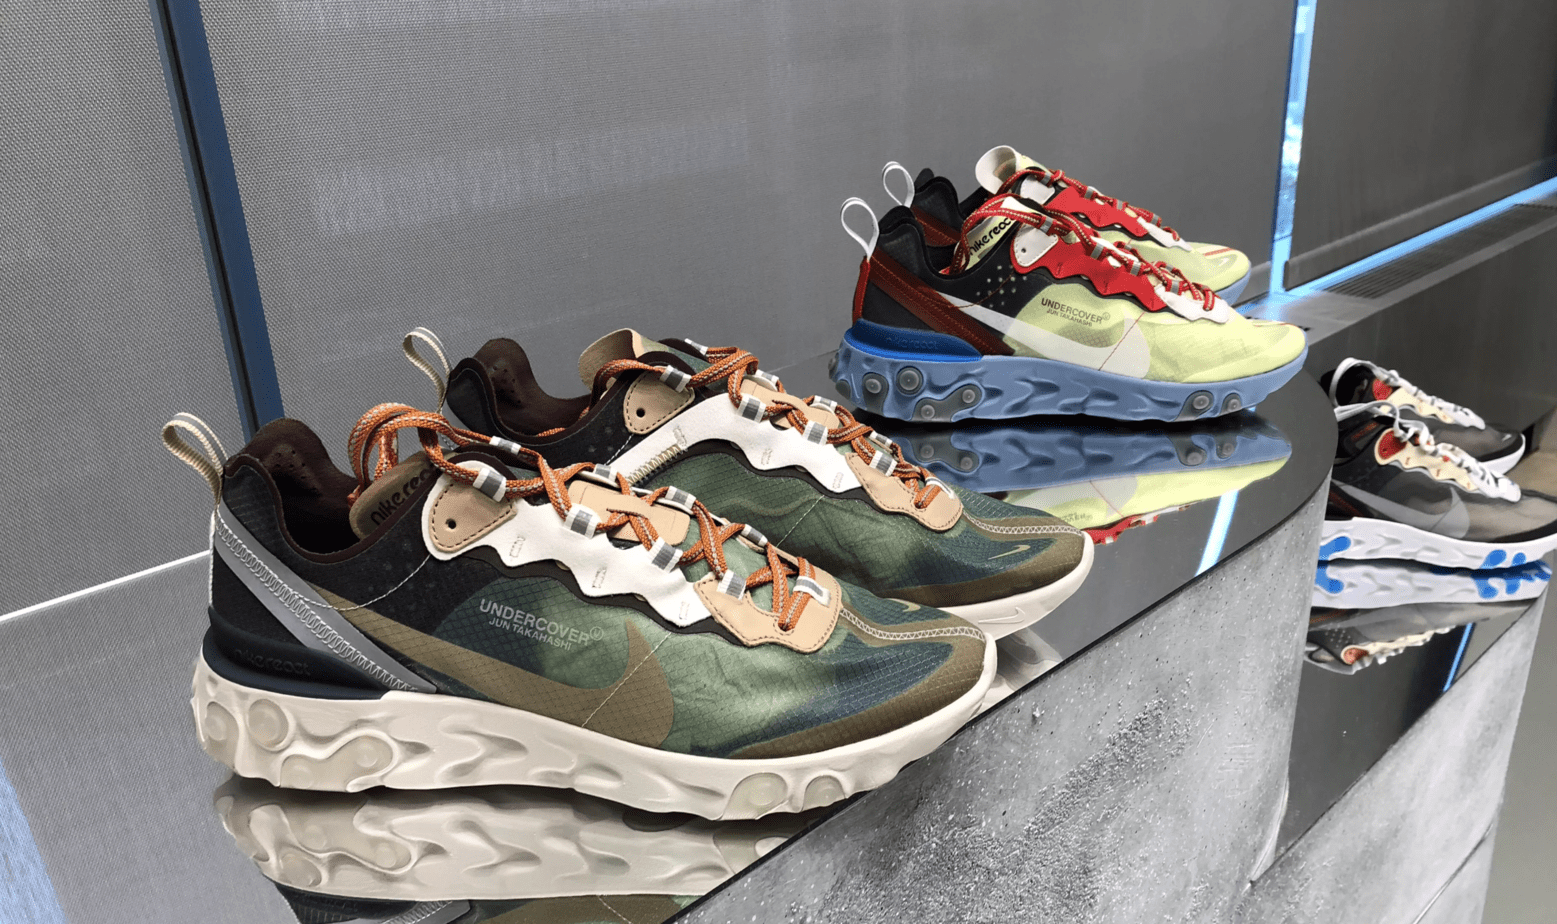 5e68170936a4b The Undercover x Nike Epic React Element 87 Will Release in at Least Five  Colorways